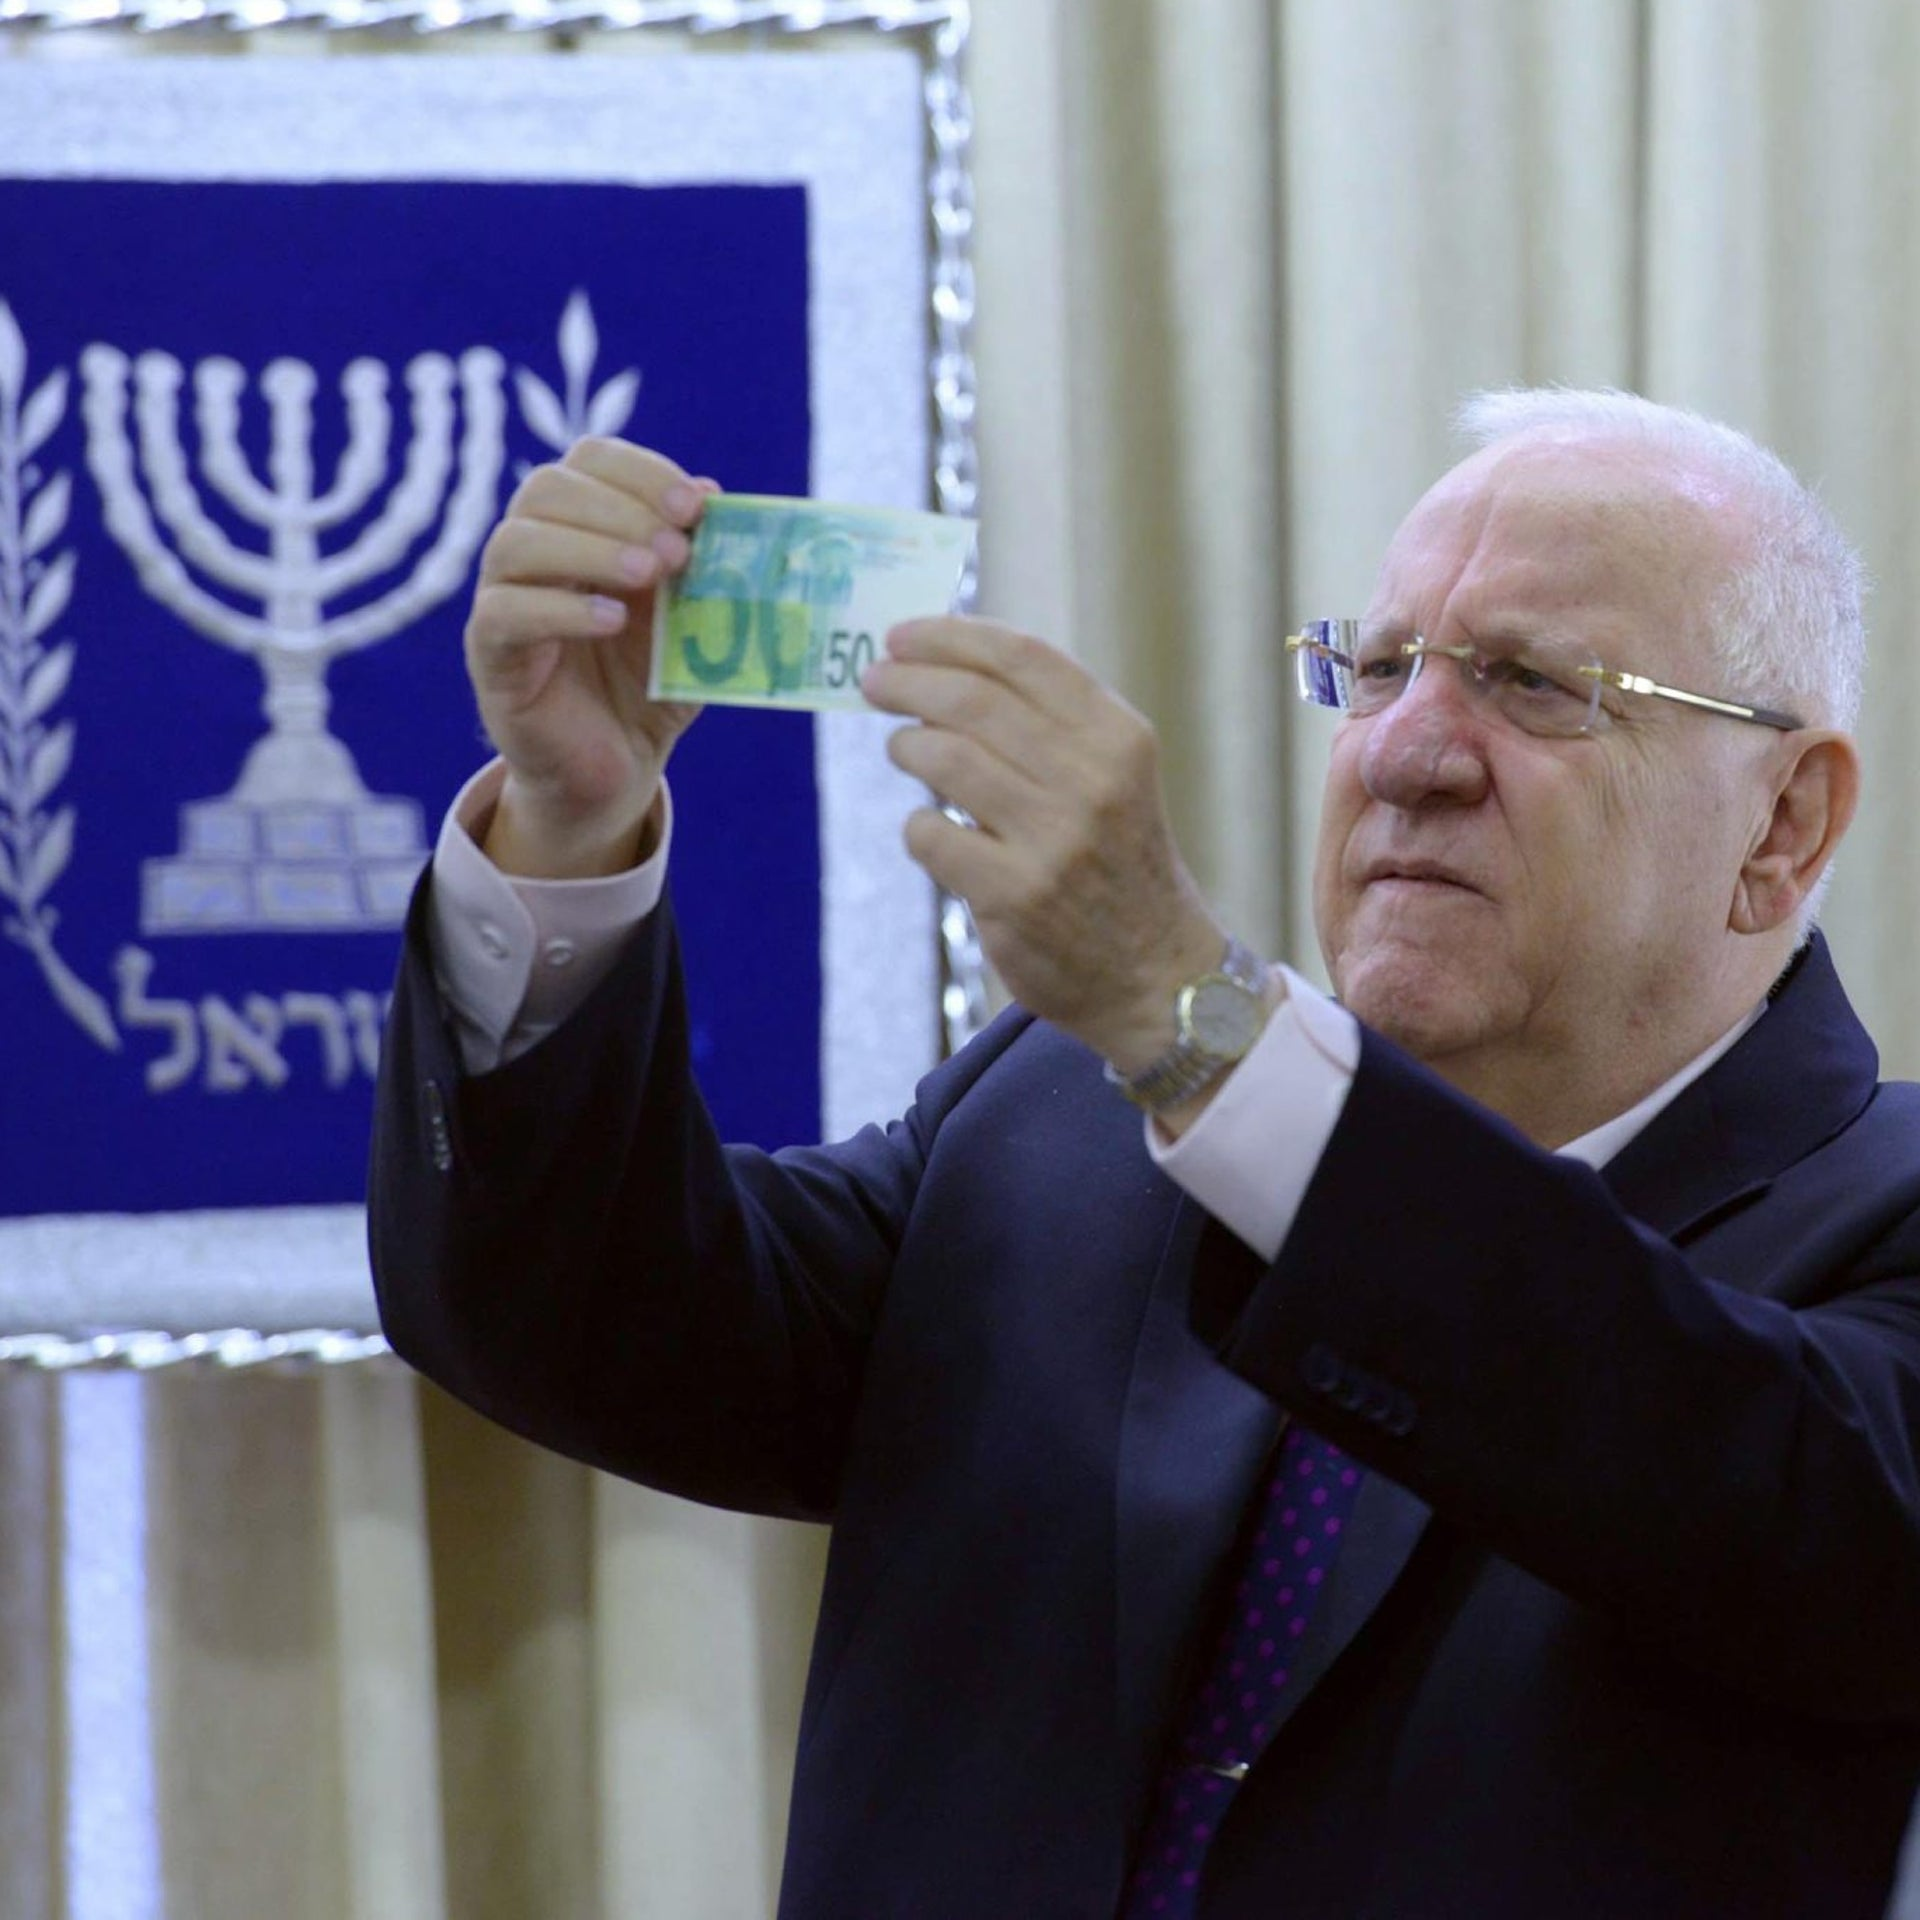 President Reuven Rivlin holds up a 50 shekel banknote.